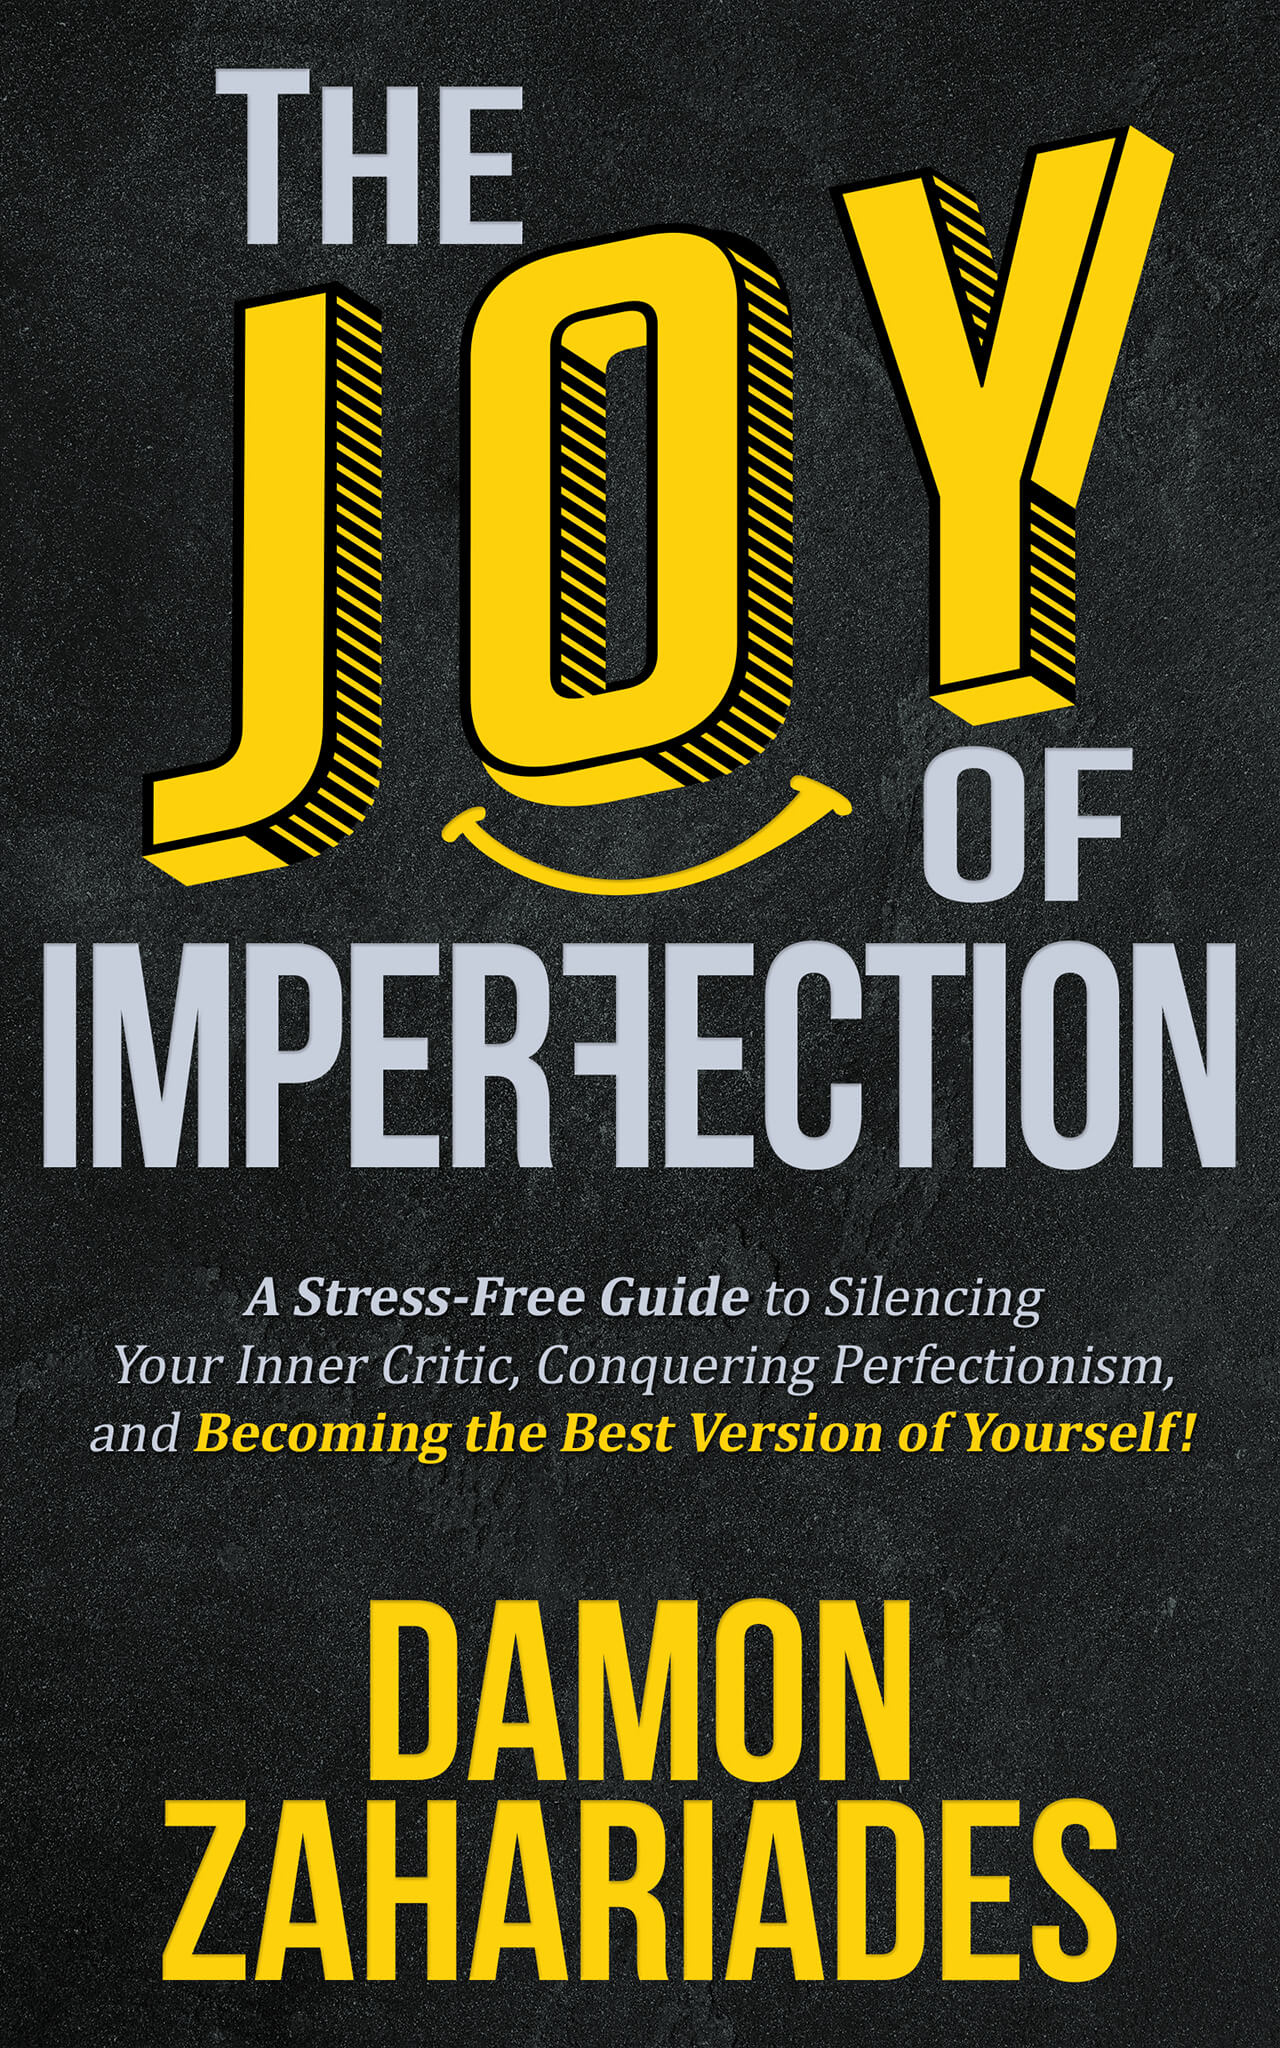 The Joy Of ImperfectionSiteSM